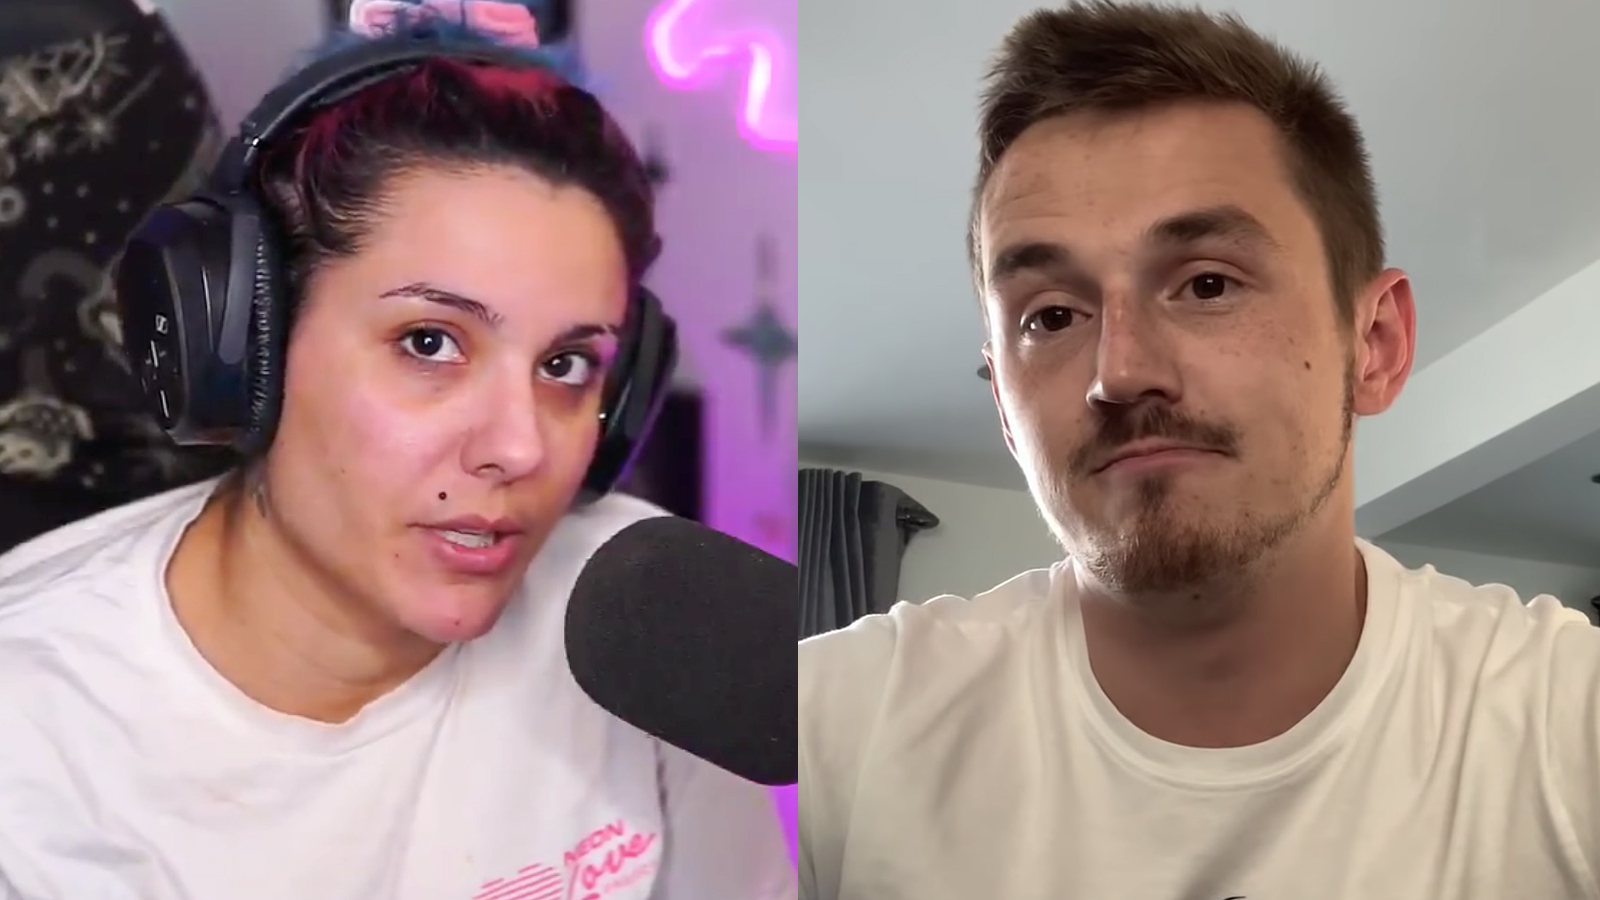 ZombiUnicorn and ProSyndicate looking at the camera